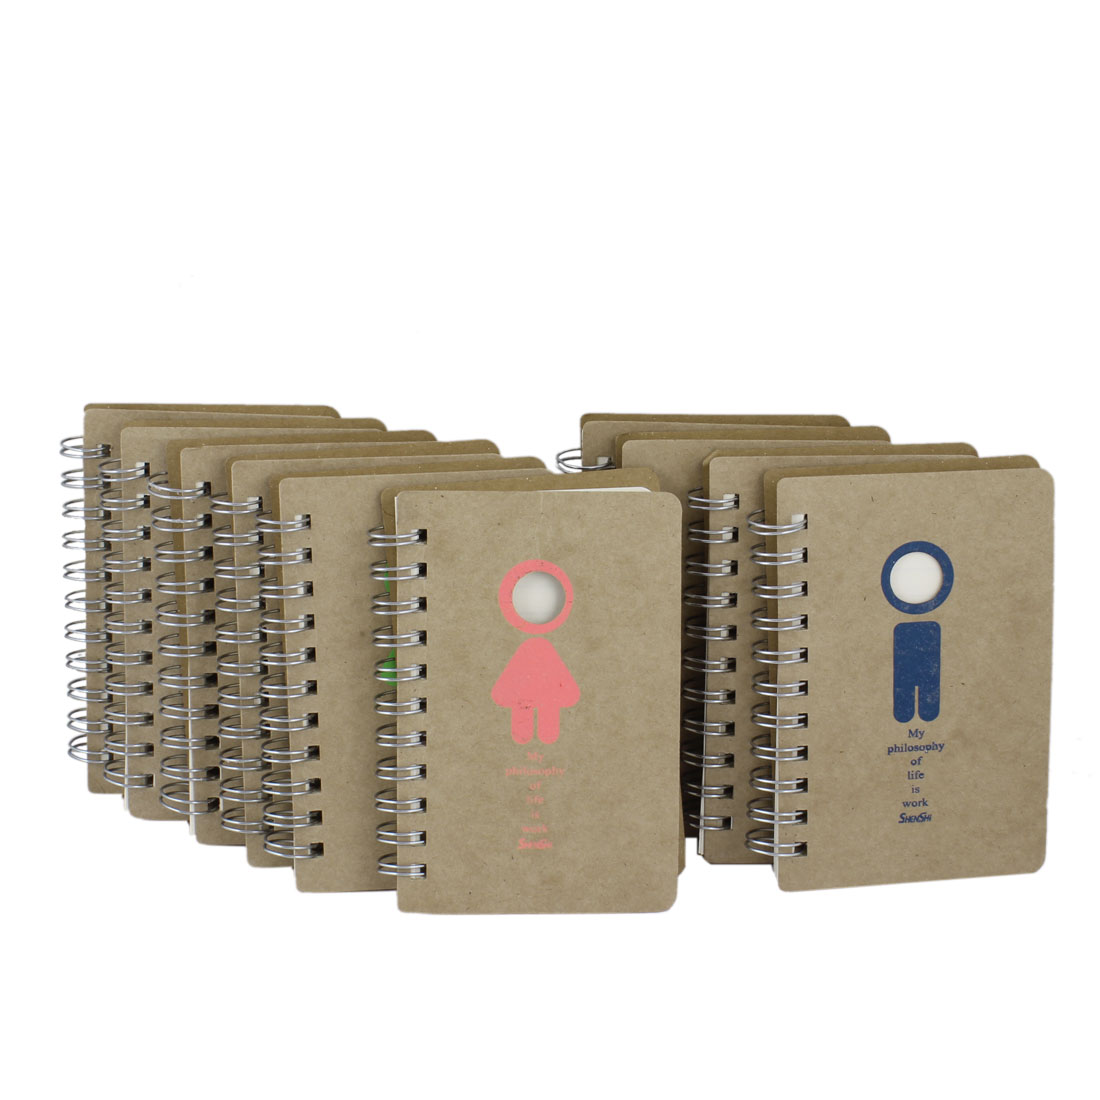 10 Pcs Beige Paper 70 Pages Gender Symbol Pattern Ring Spring Notebook